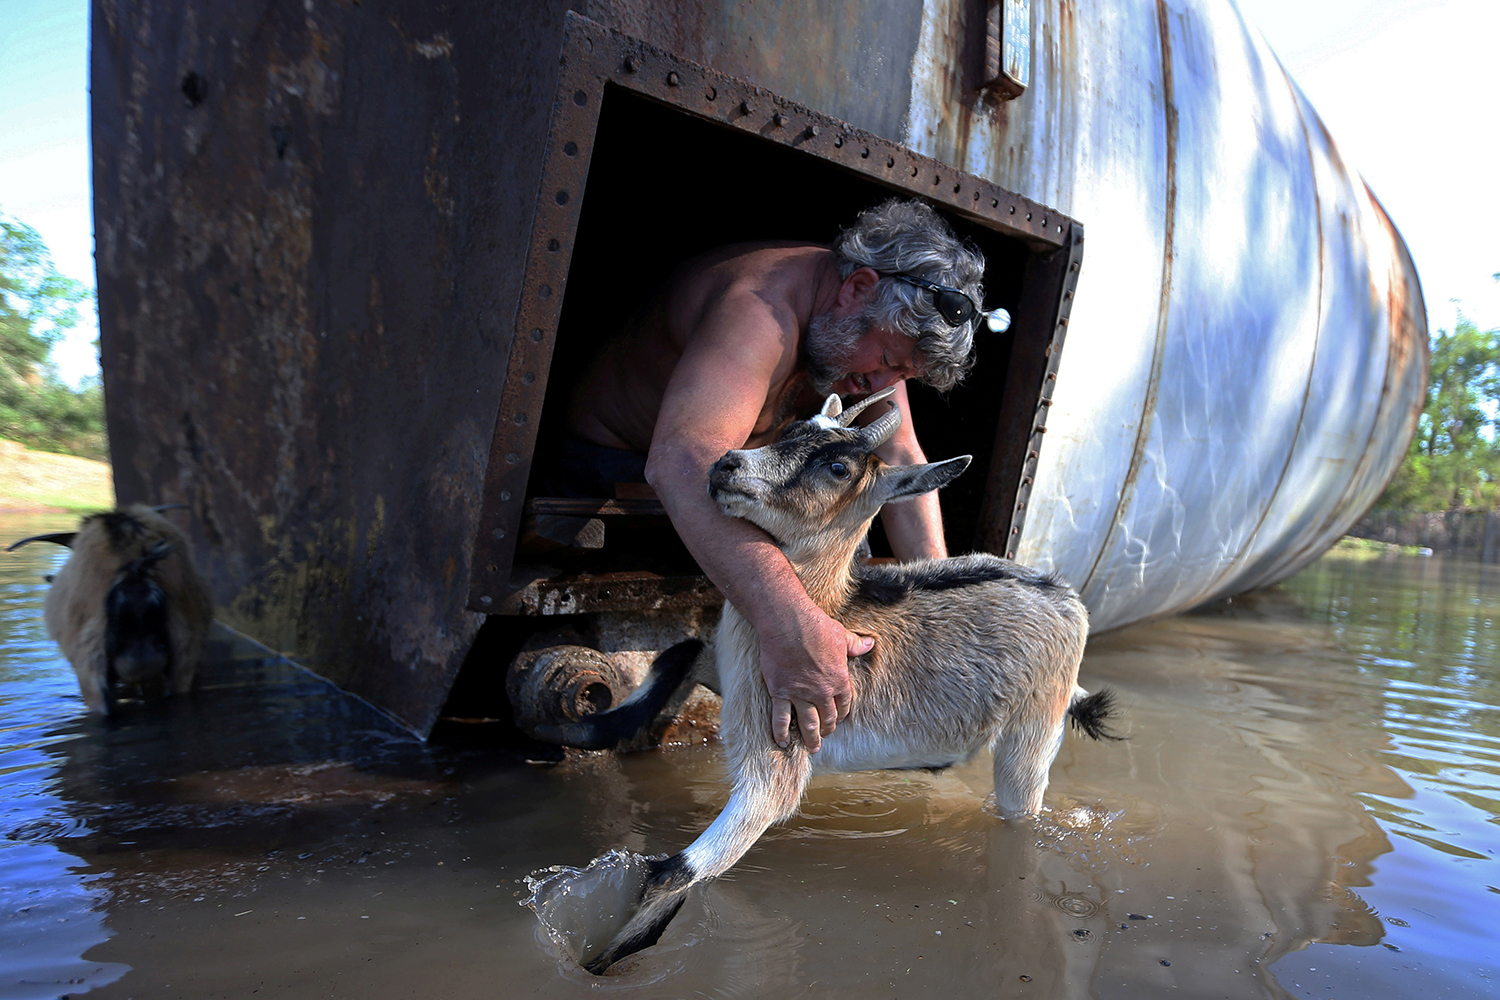 Brian Schexnayder rescues his goat from a damaged silo on his farm after Hurricane Delta swept through Iowa, Louisiana, on Oct. 10.  Jonathan Bachman/REUTERS